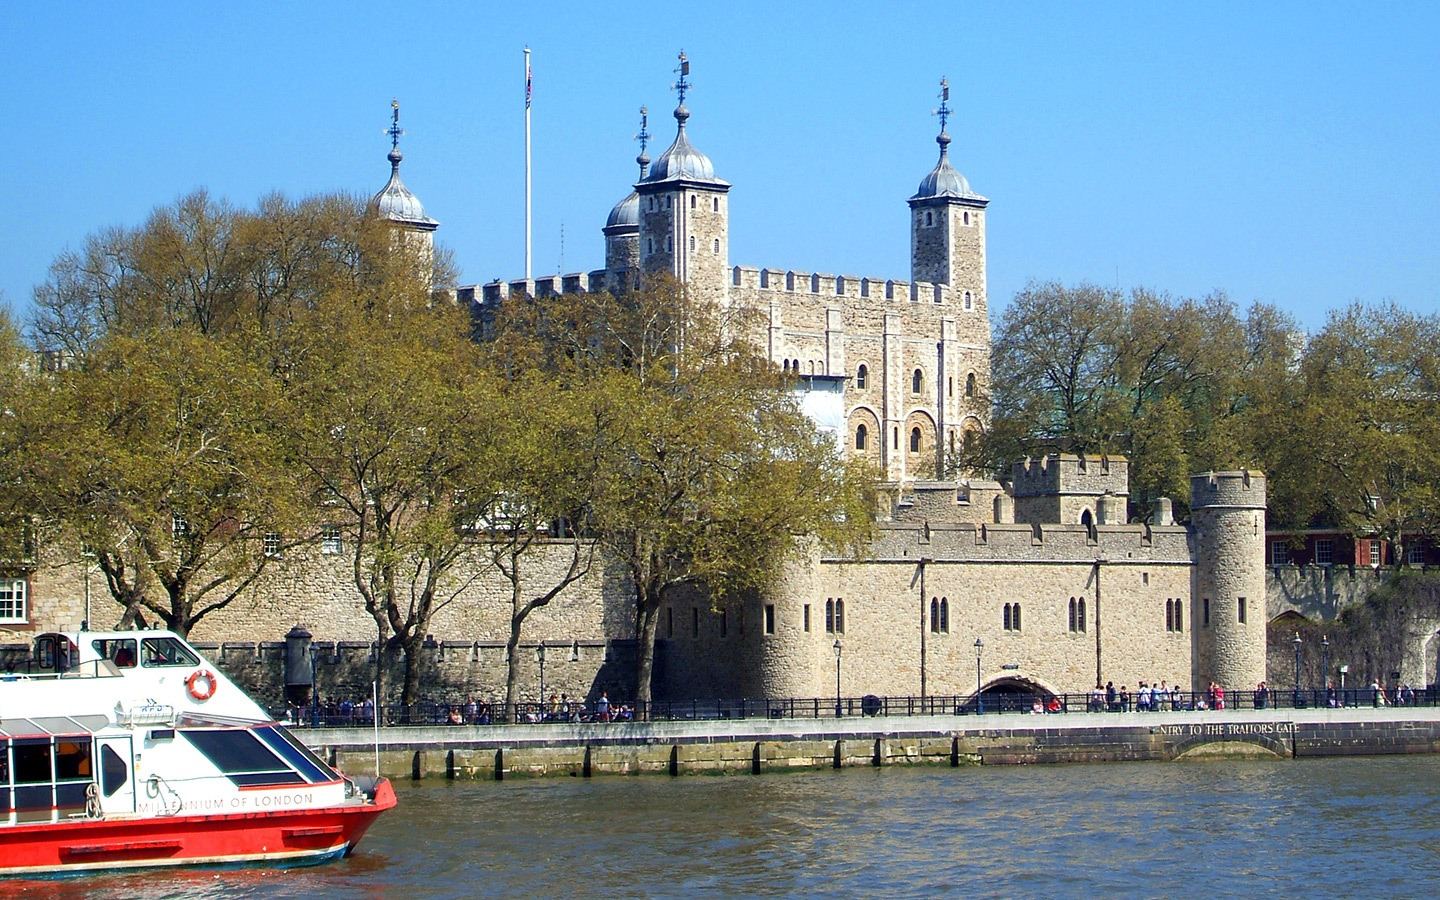 Boat trip on the Thames, London